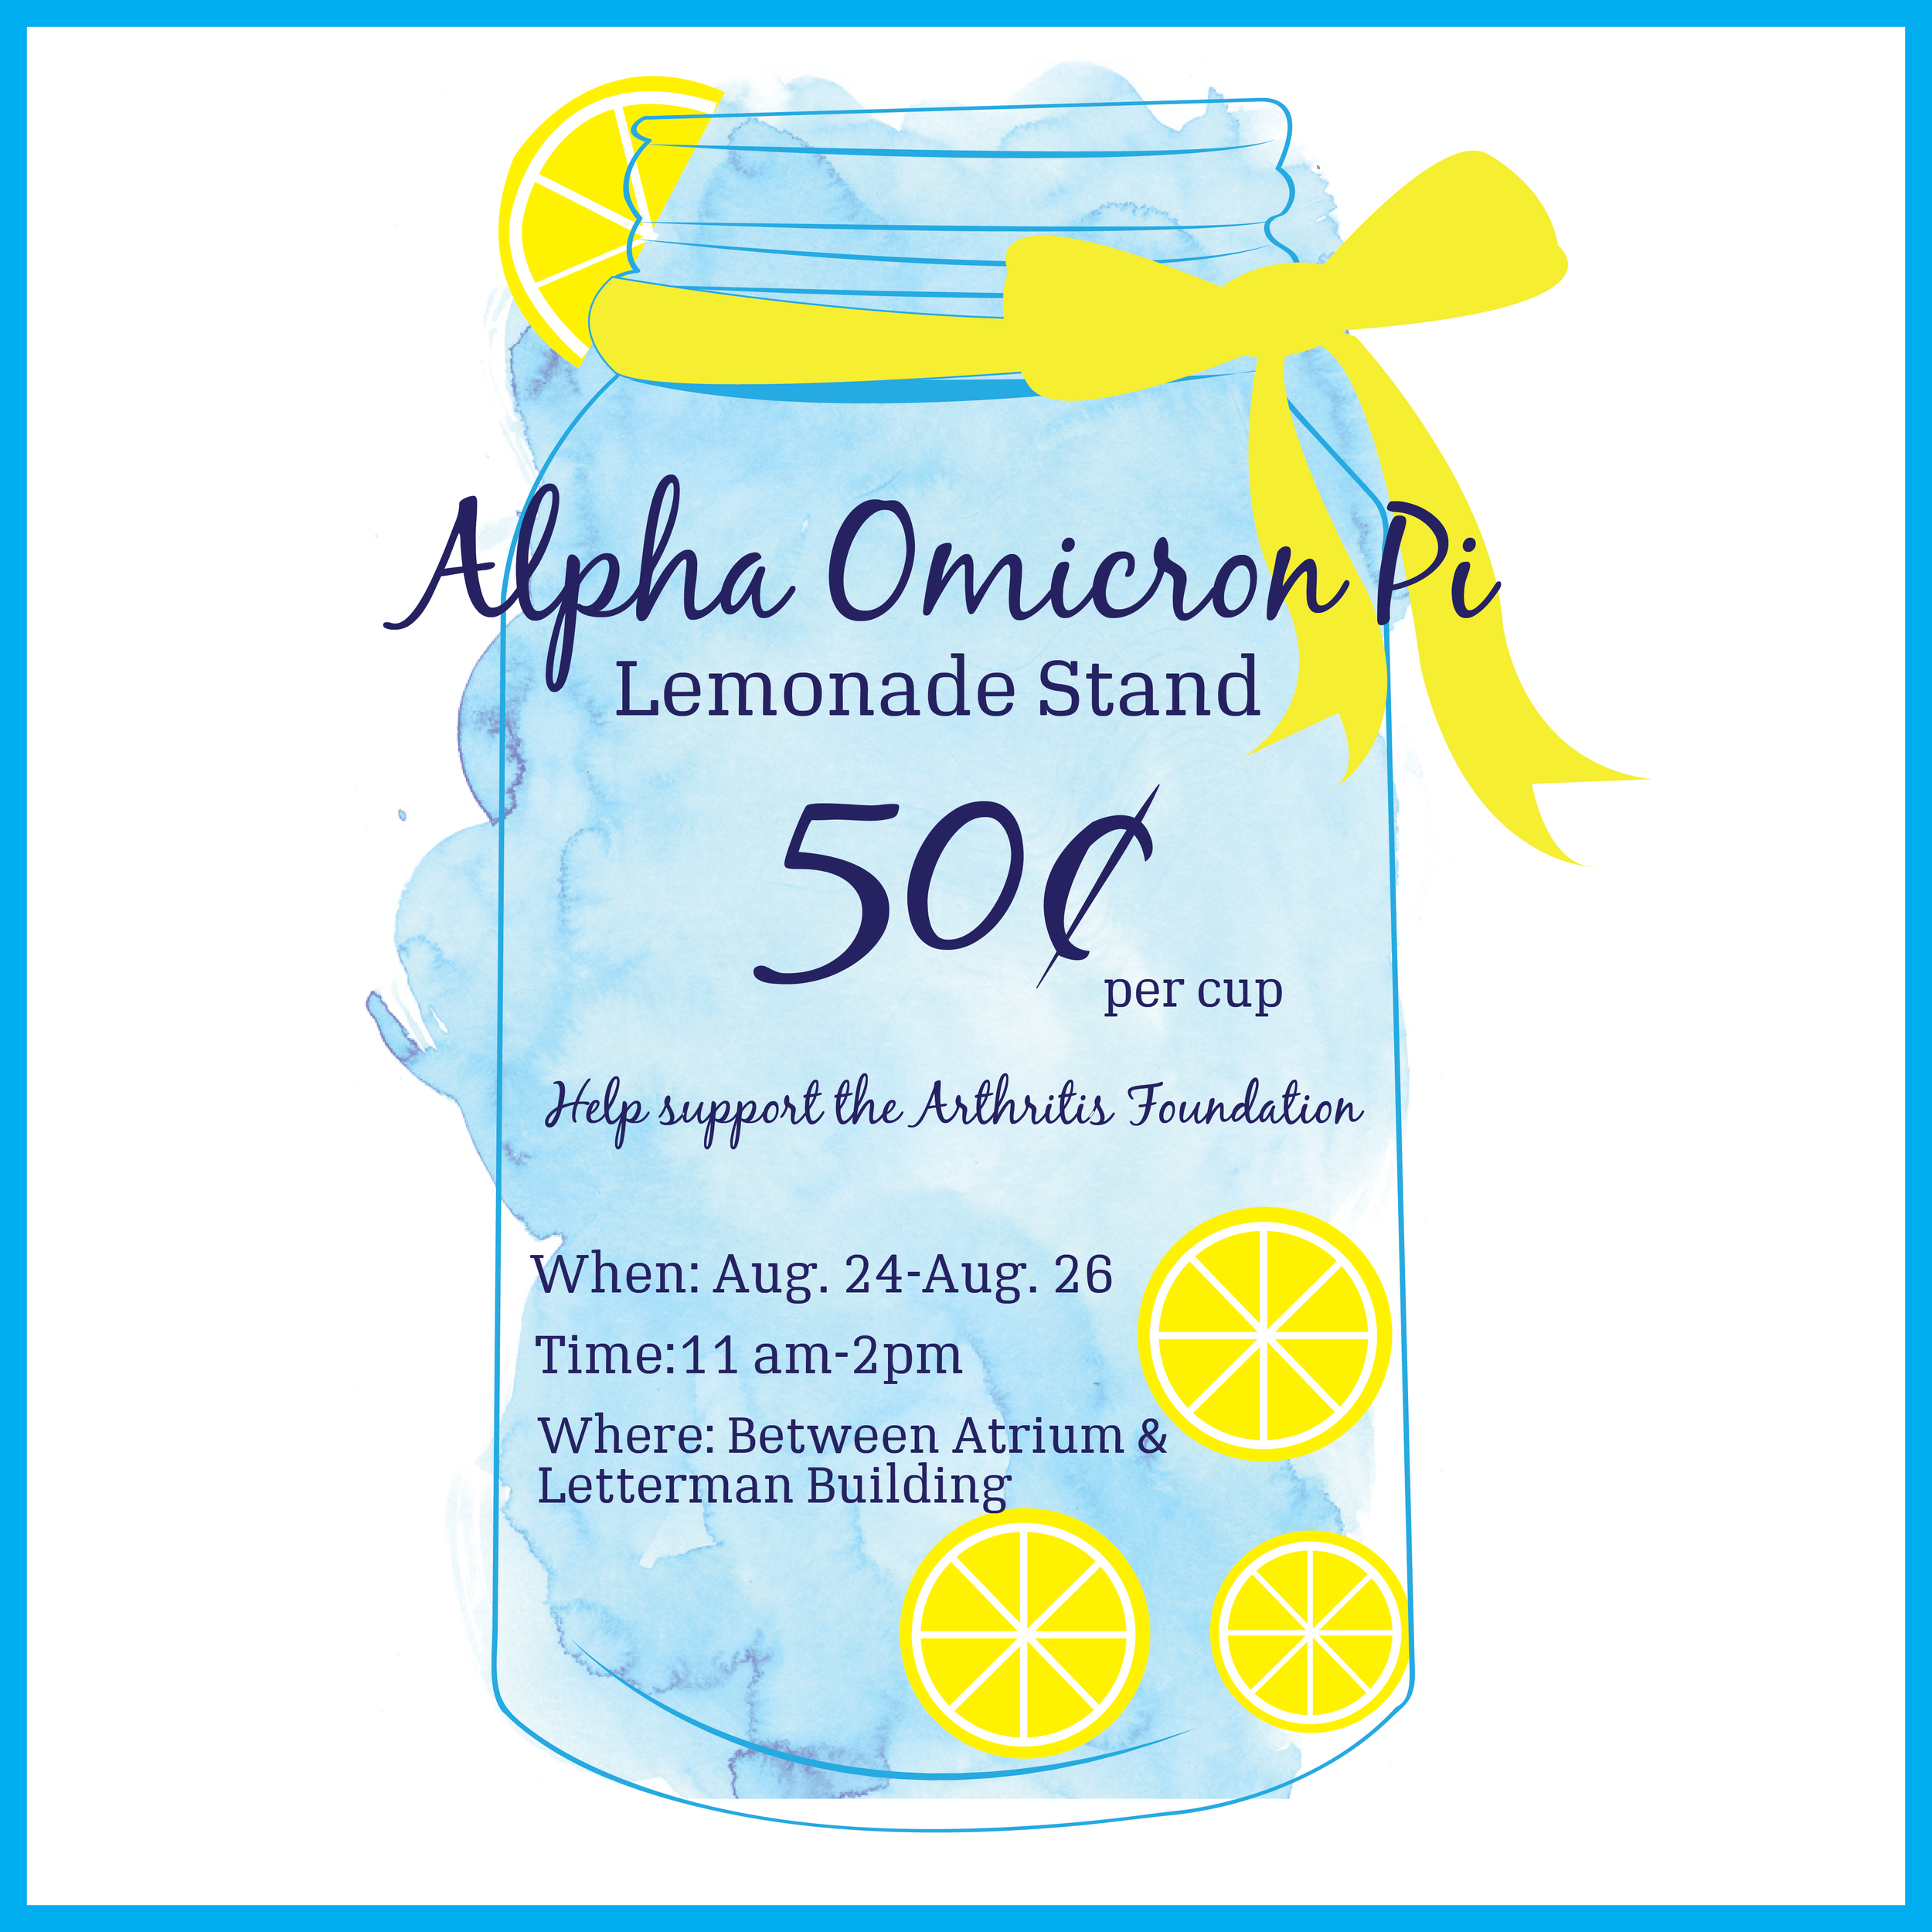 Used for Instagram and Facebook posts, Alpha Omicron Pi (AOII) Sorority needed a social graphic to promote their lemonade stand to raise money for the Arthritis Foundation. Acting as a member of the communications committee for AOII, I was able to design this graphic.